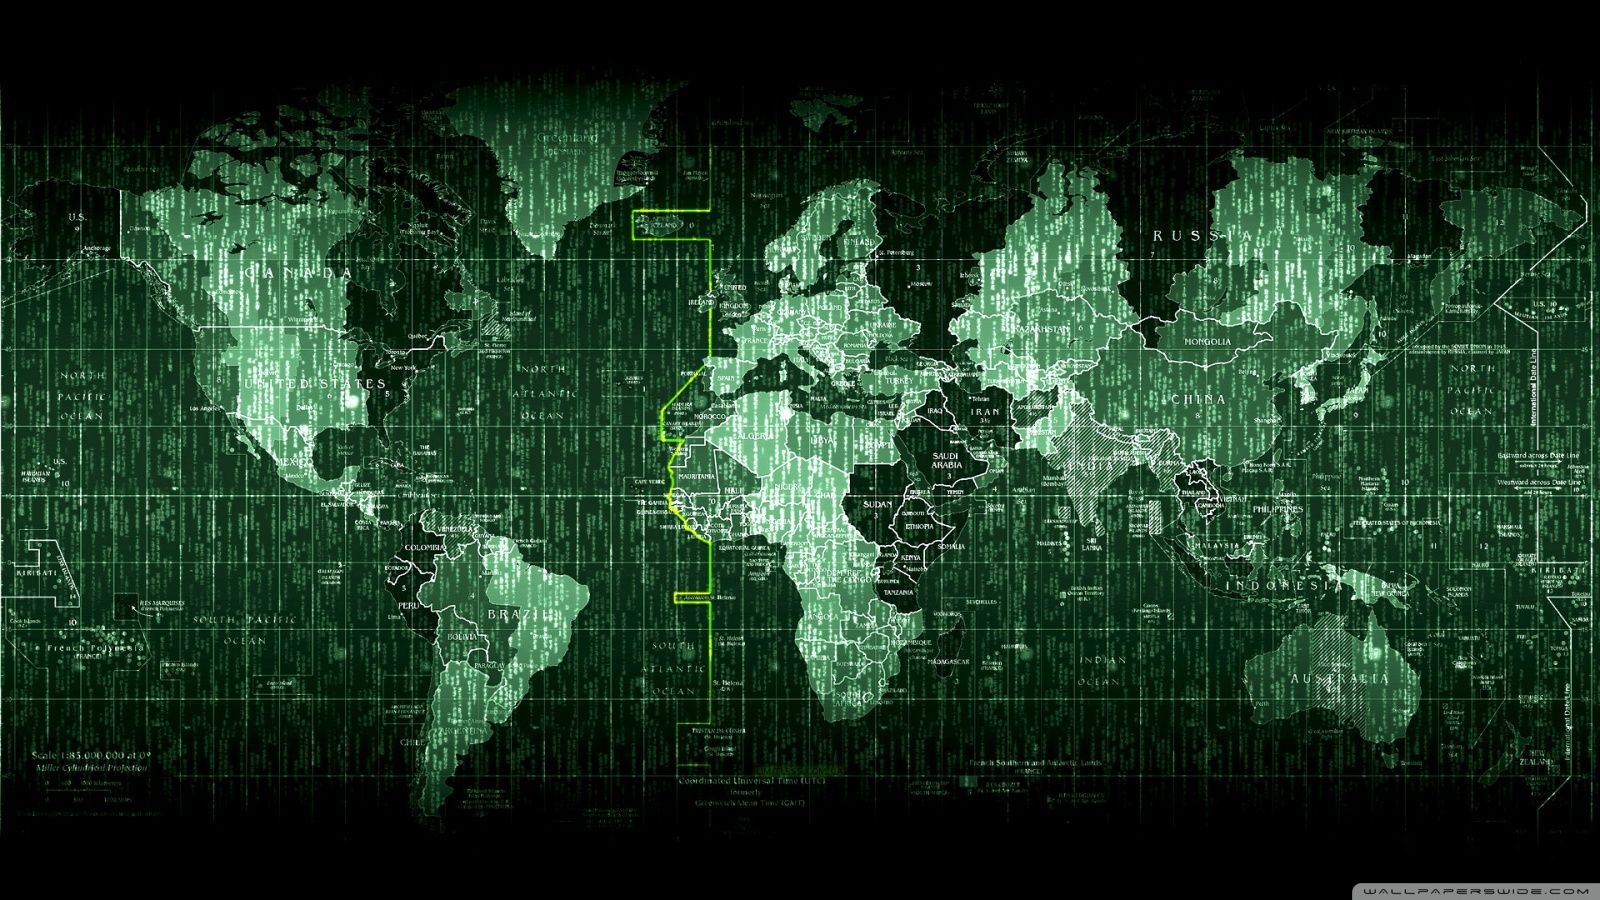 Matrix code world map hd desktop wallpaper high definition matrix code world map hd desktop wallpaper high definition gumiabroncs Choice Image